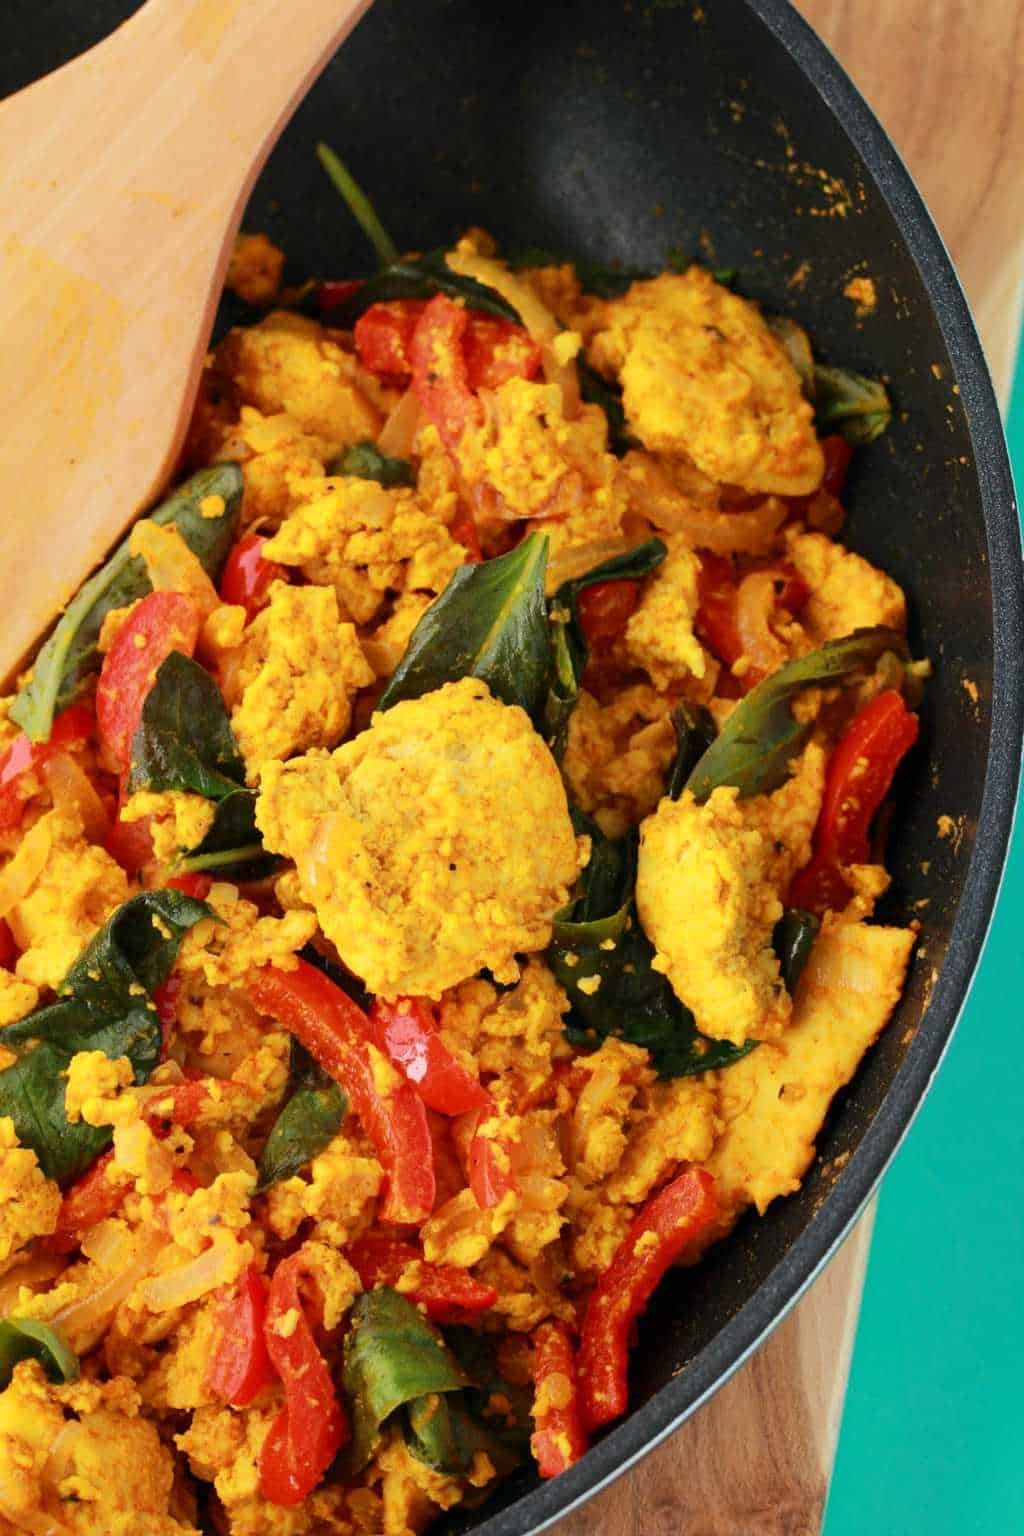 Tofu Scramble in a frying pan with a wooden spoon.